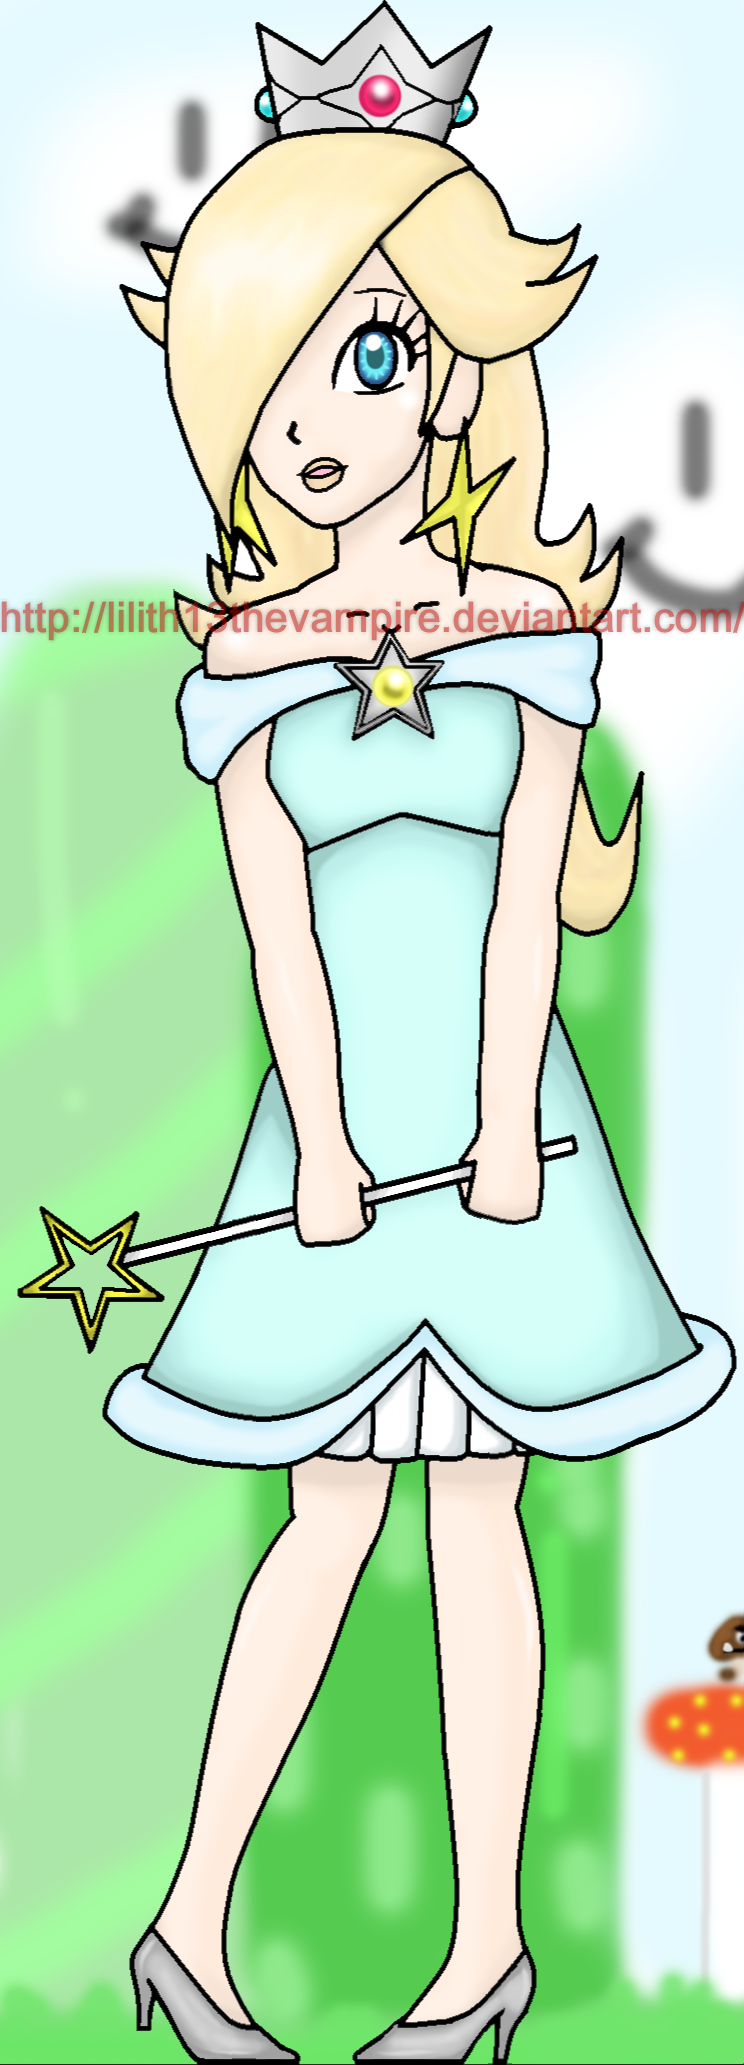 Princess Rosalina Summer Dress by Lilith13thevampire